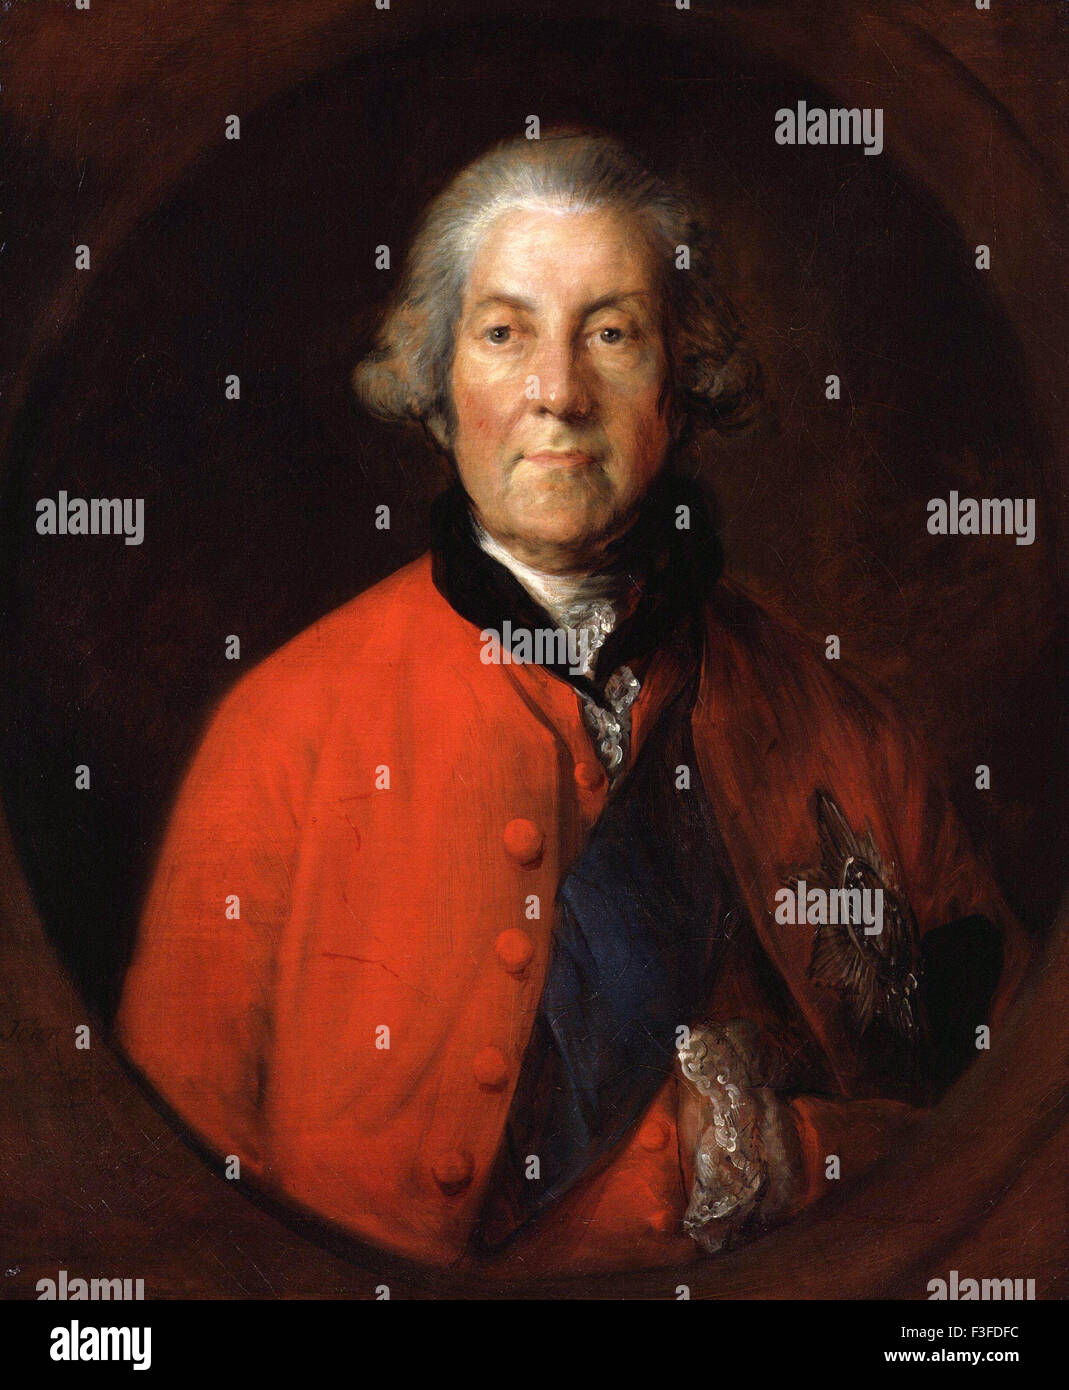 Thomas Gainsboroug - John Russell, 4th Duke of Bedford - Stock Image